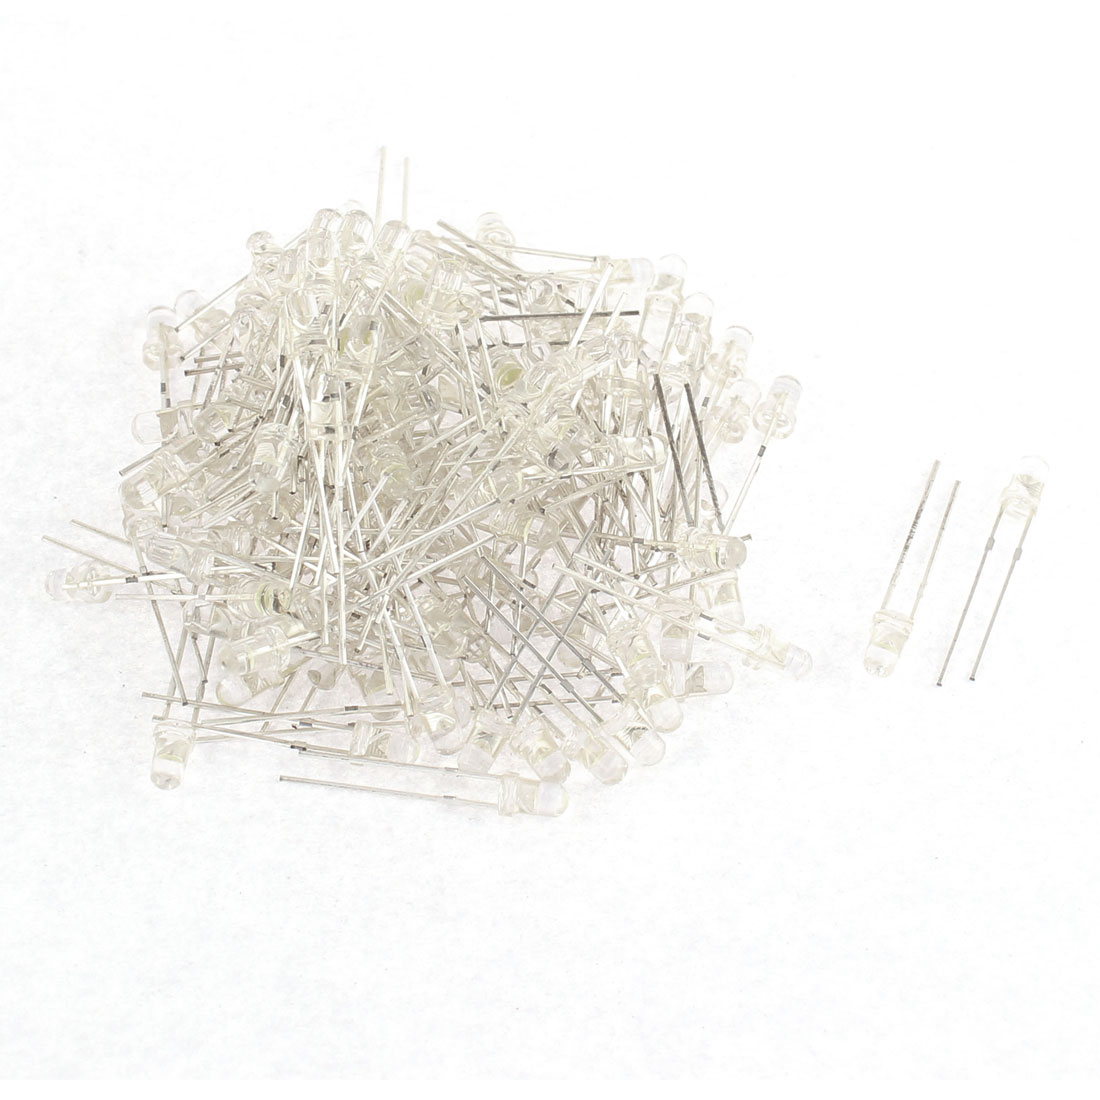 150pcs 3mm Round Emitting Diode White Color Diffused LED Light Beads